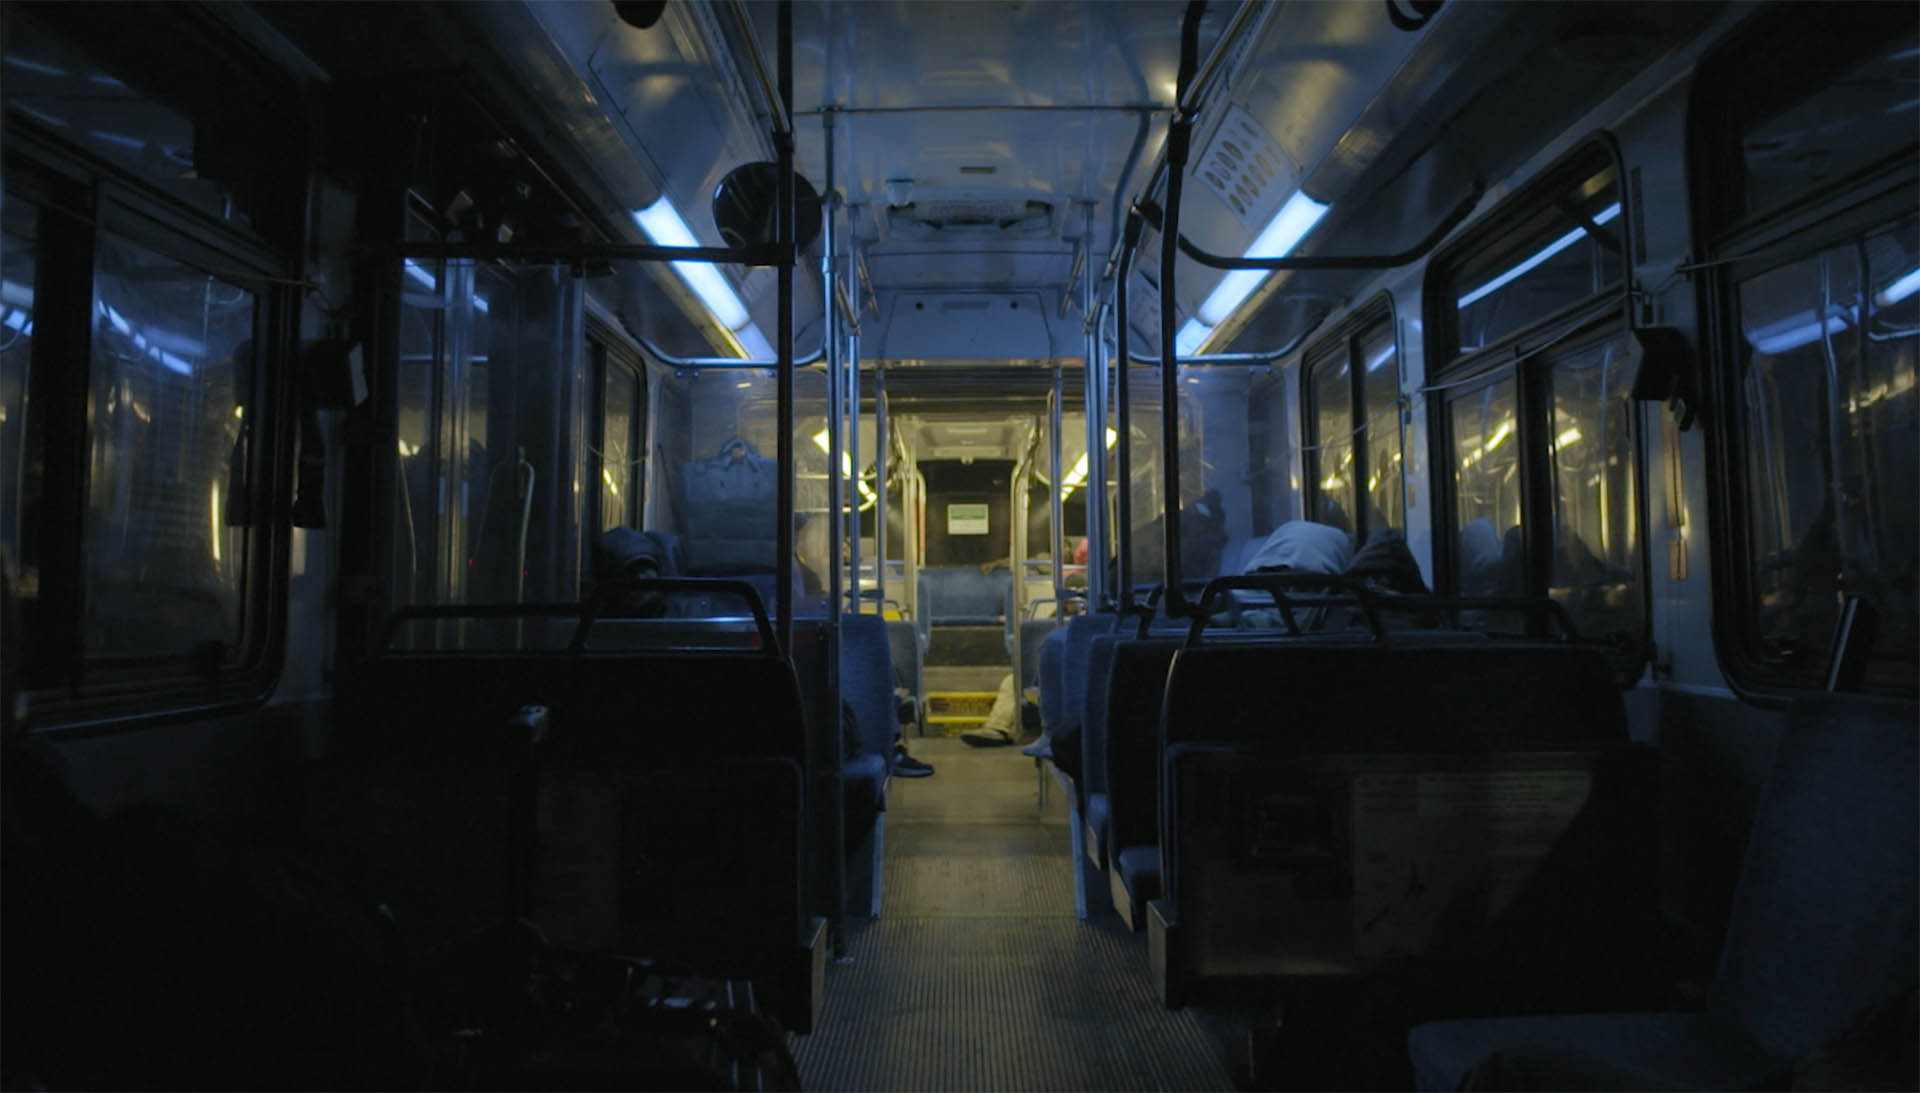 The bus route 22 of silicon valley at night in the short film Hotel 22